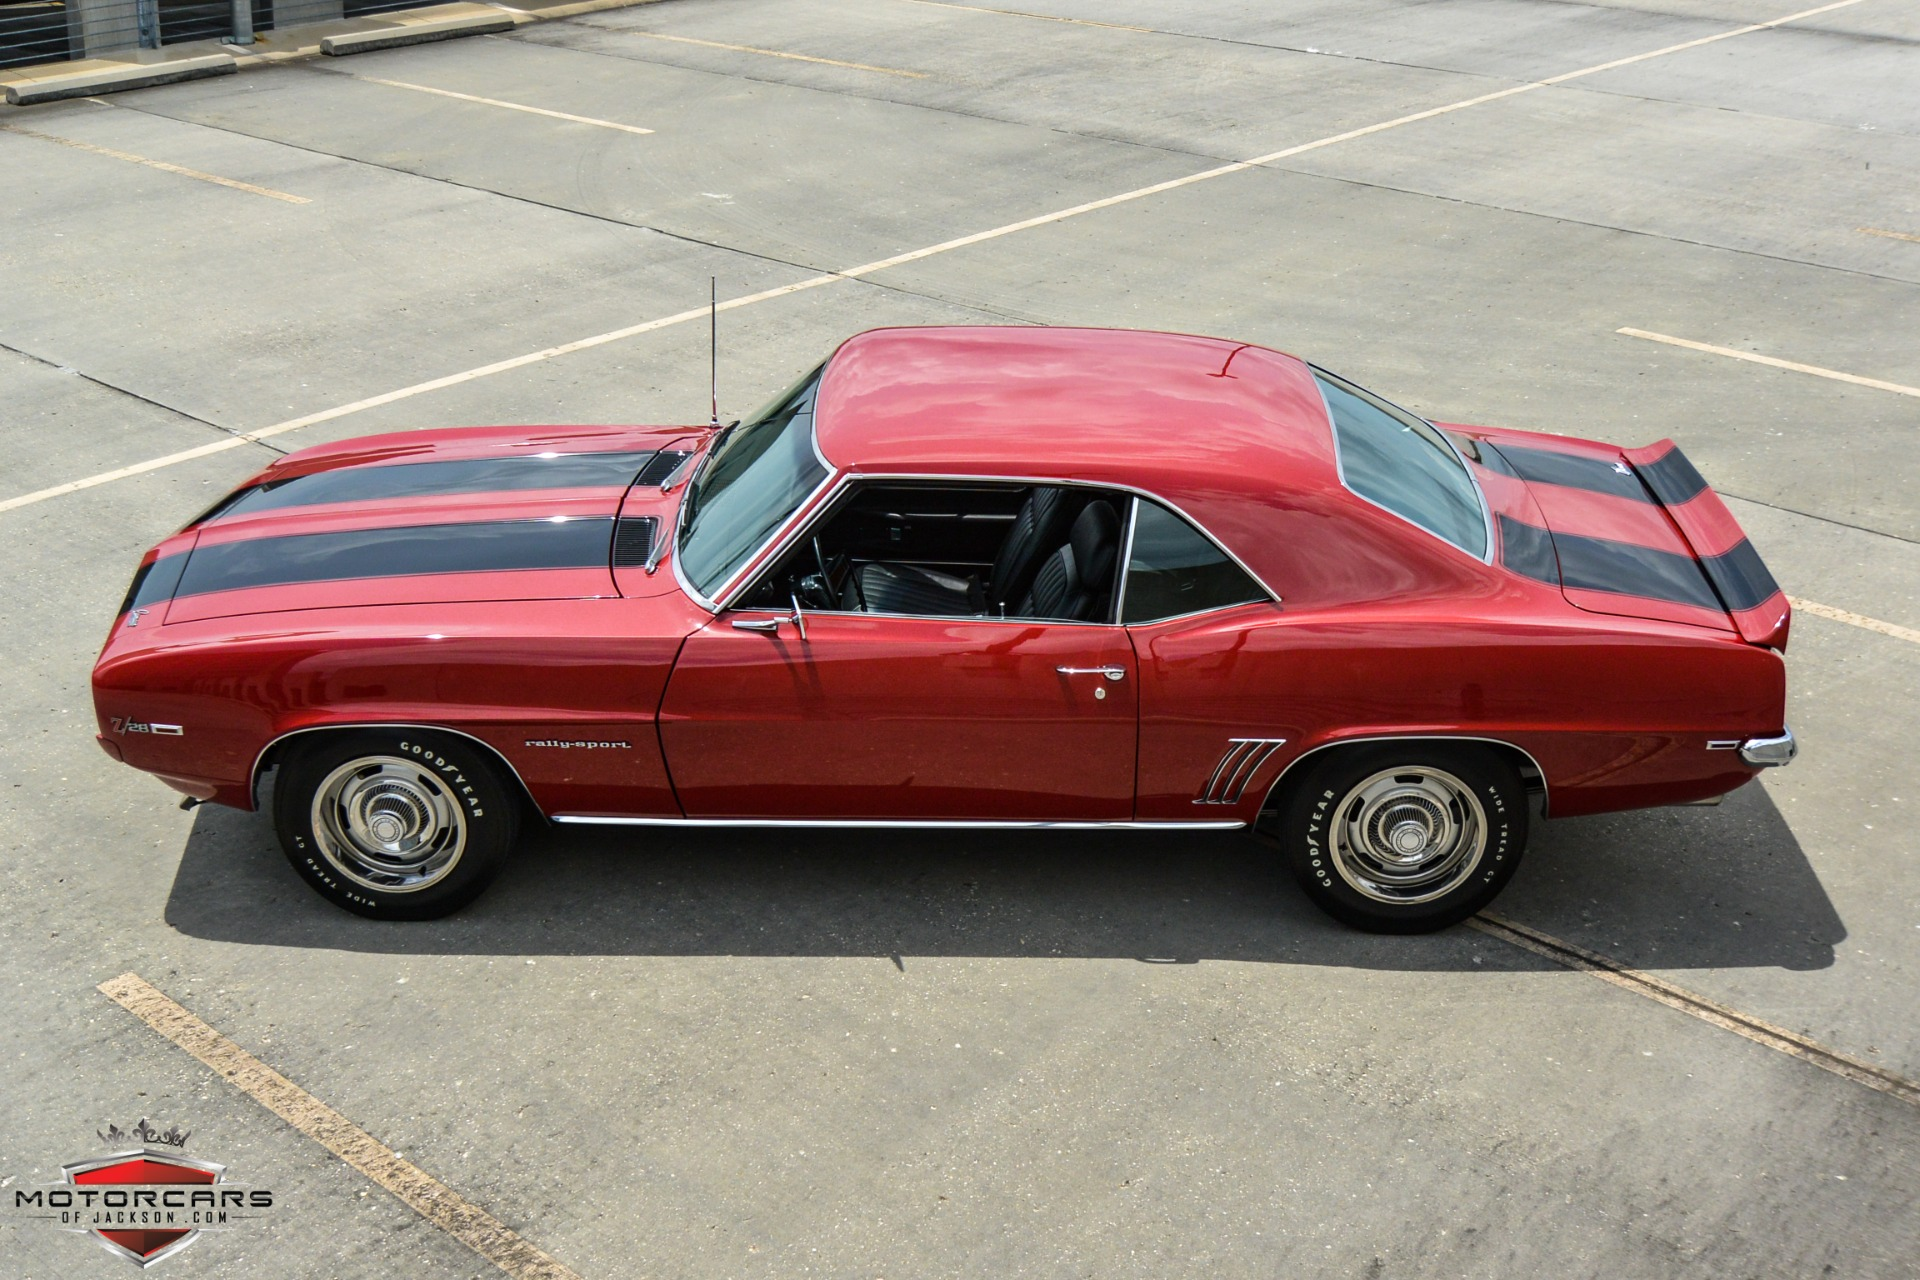 Used 1969 Chevrolet Camaro Z/28 RS All matching #s Concours   Jackson, MS